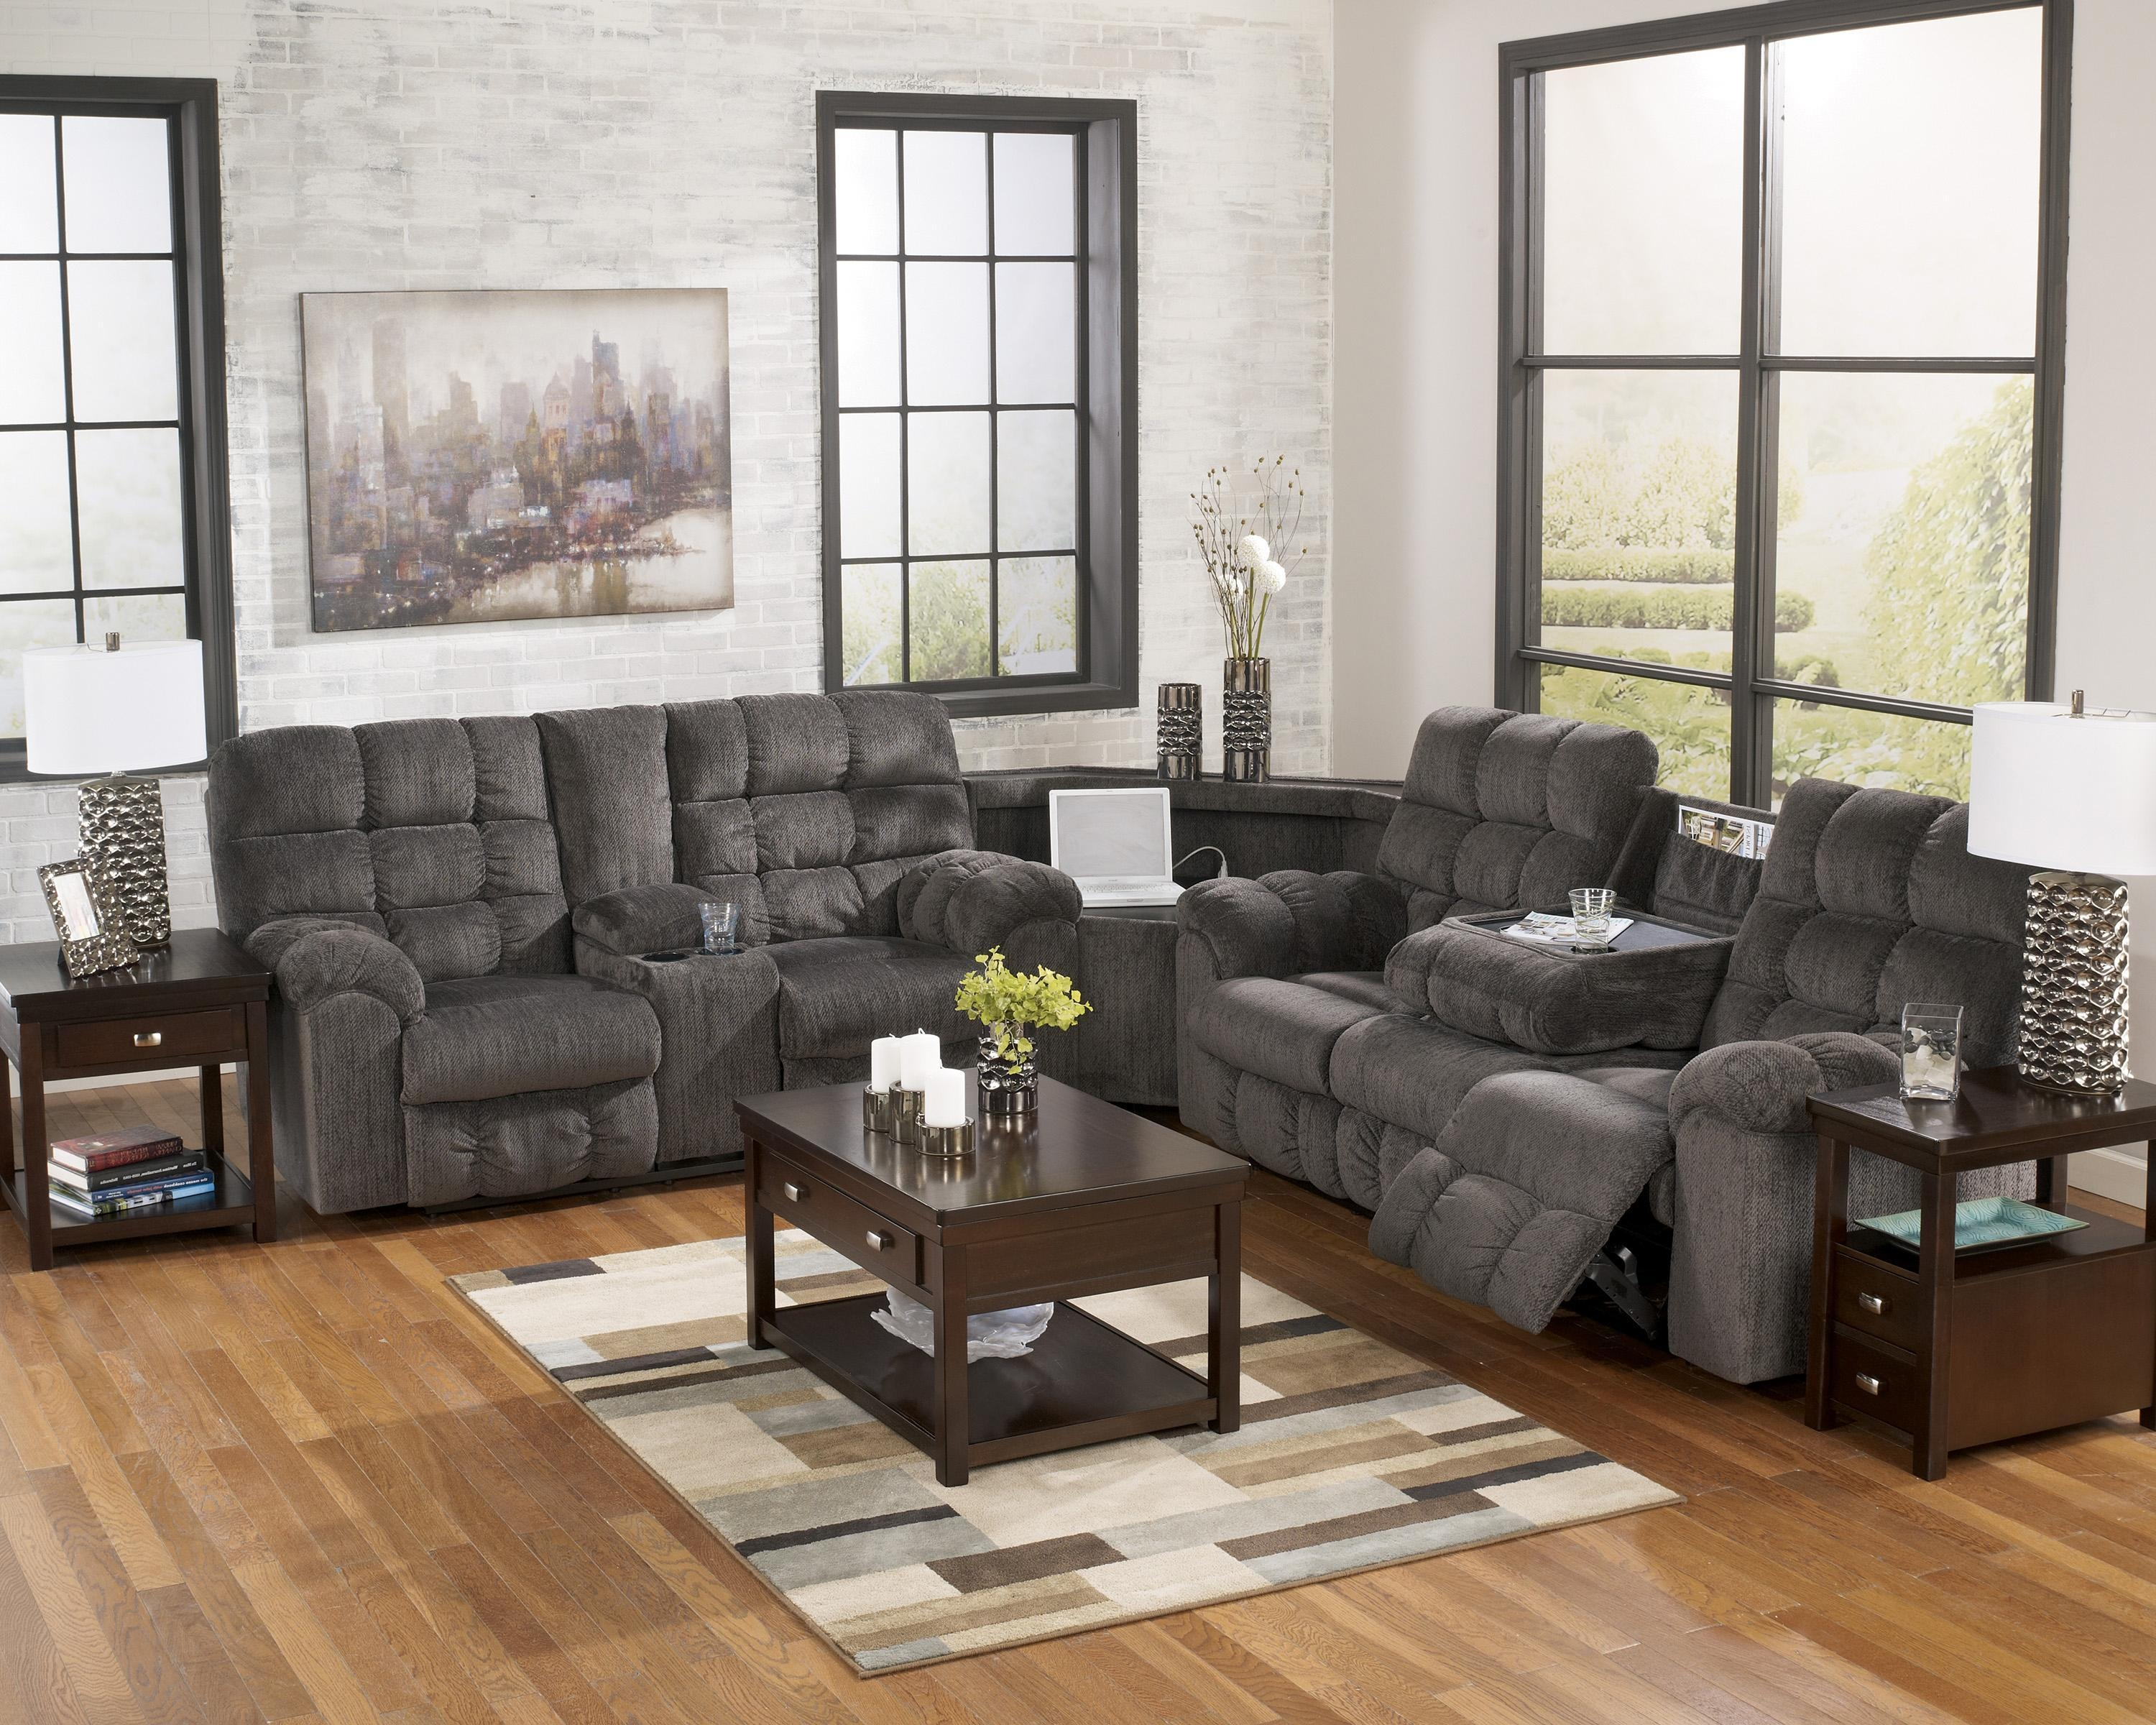 Reclining Sectional With Left Side Loveseat, Cup Holders And Pertaining To Sectional With Cup Holders (Image 10 of 20)